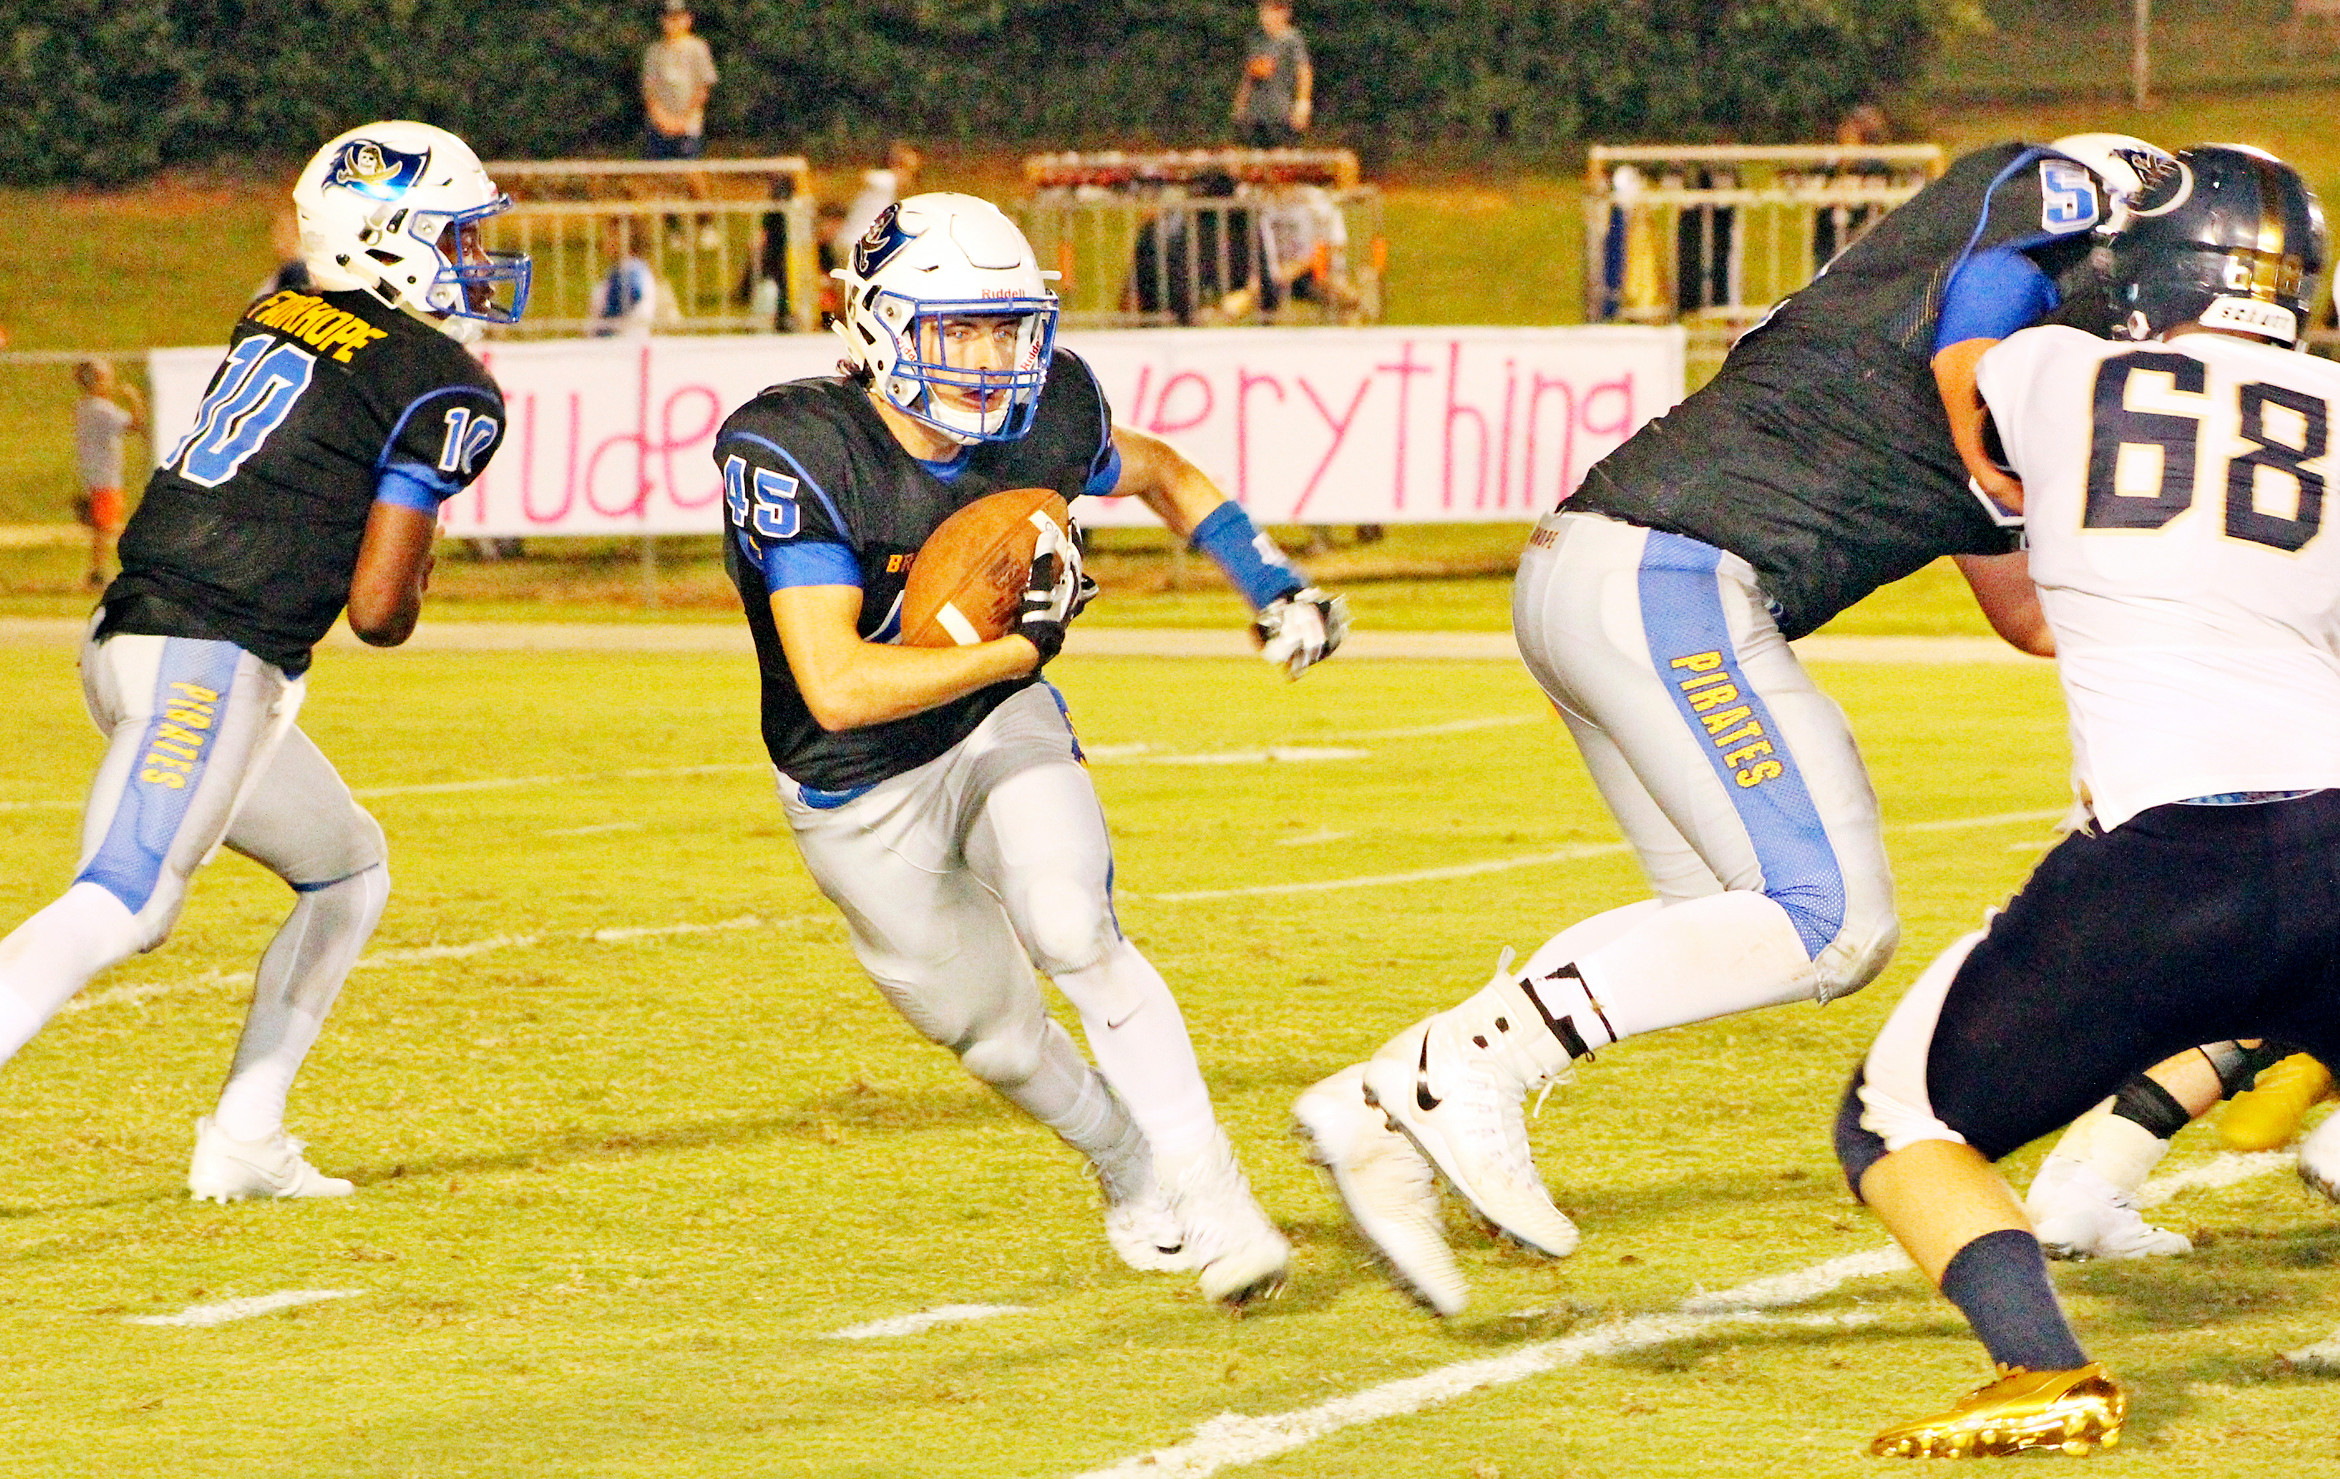 Michael Colclasure takes the hand off as Jackson DeTombe (68) defends for the Lions.